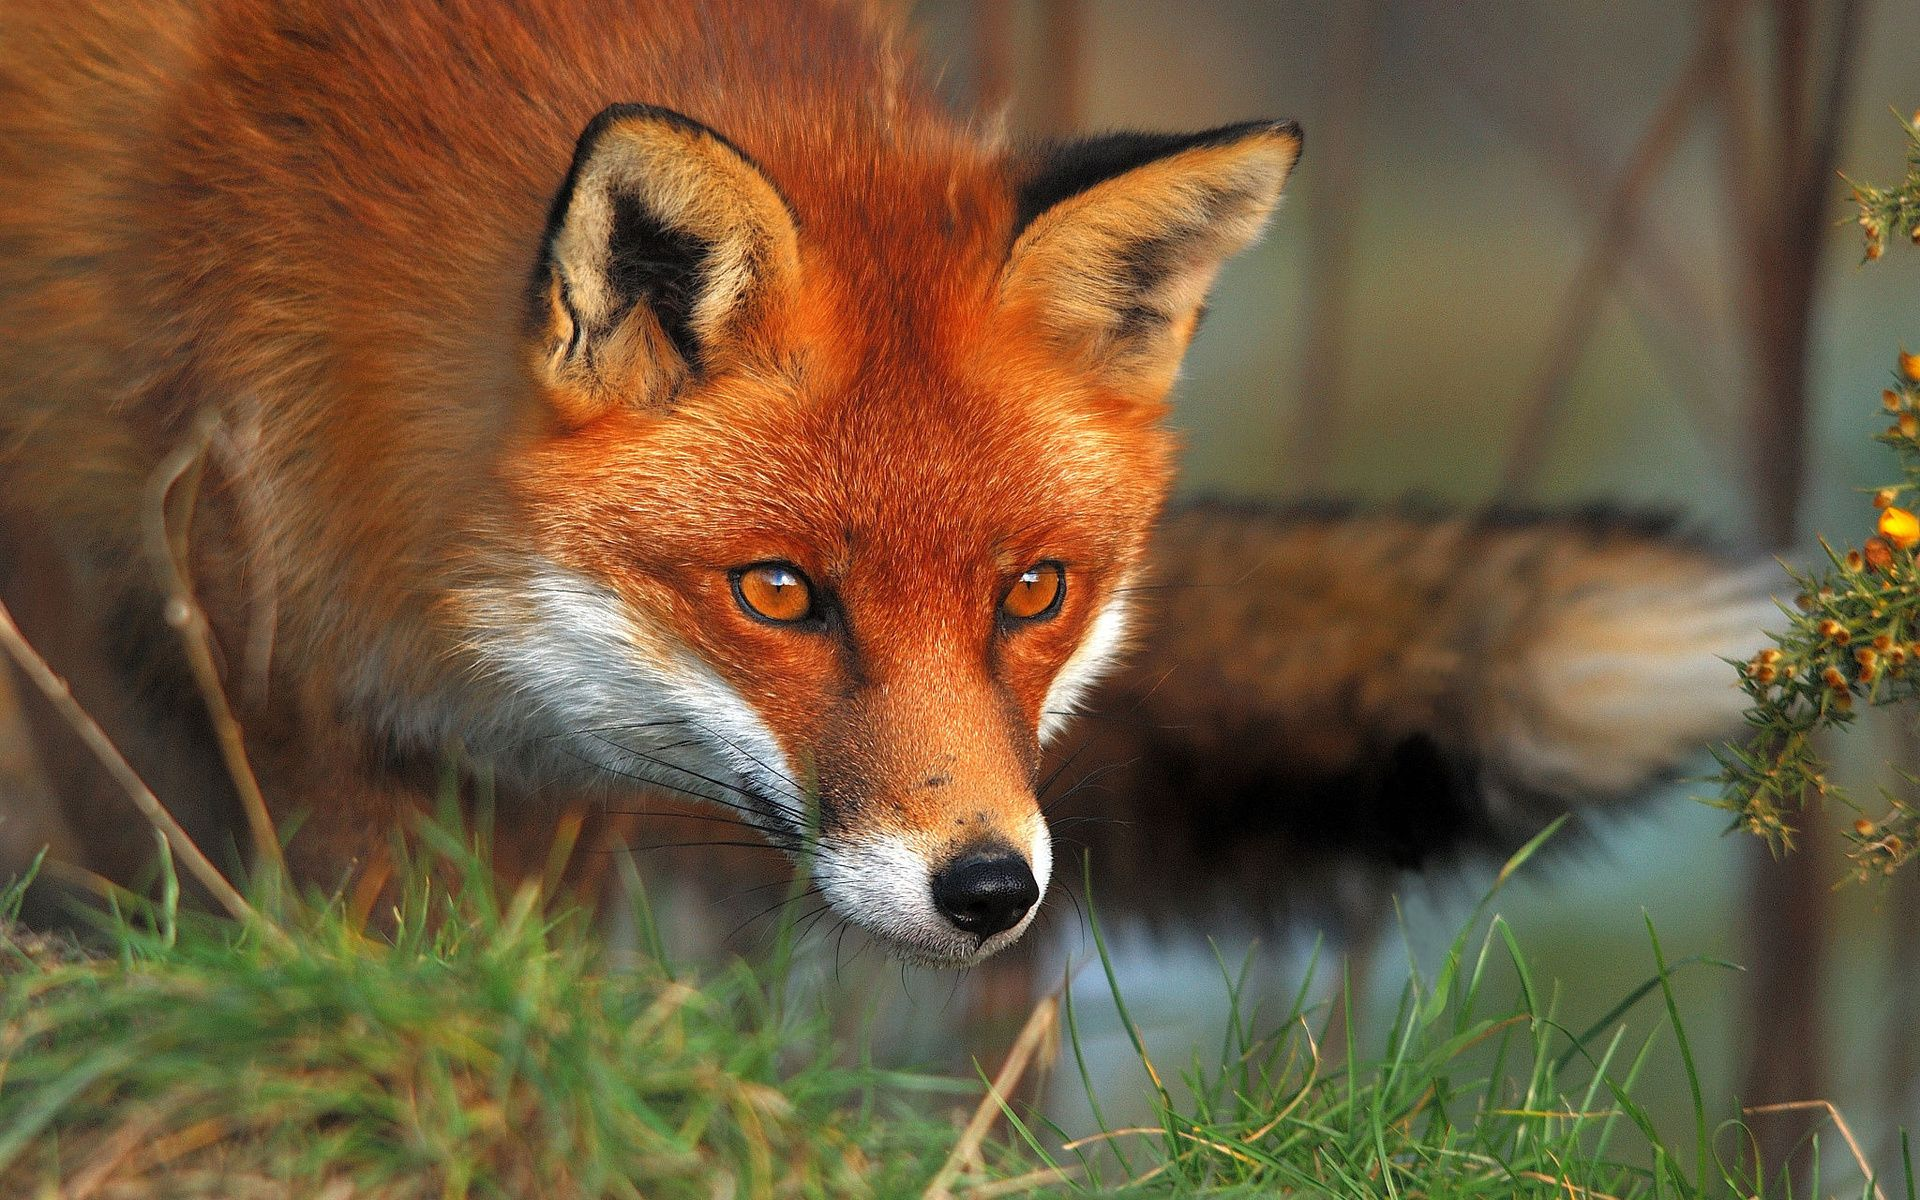 Red Fox Wallpaper Hd 46023 1920x1200 Px Hdwallsourcecom